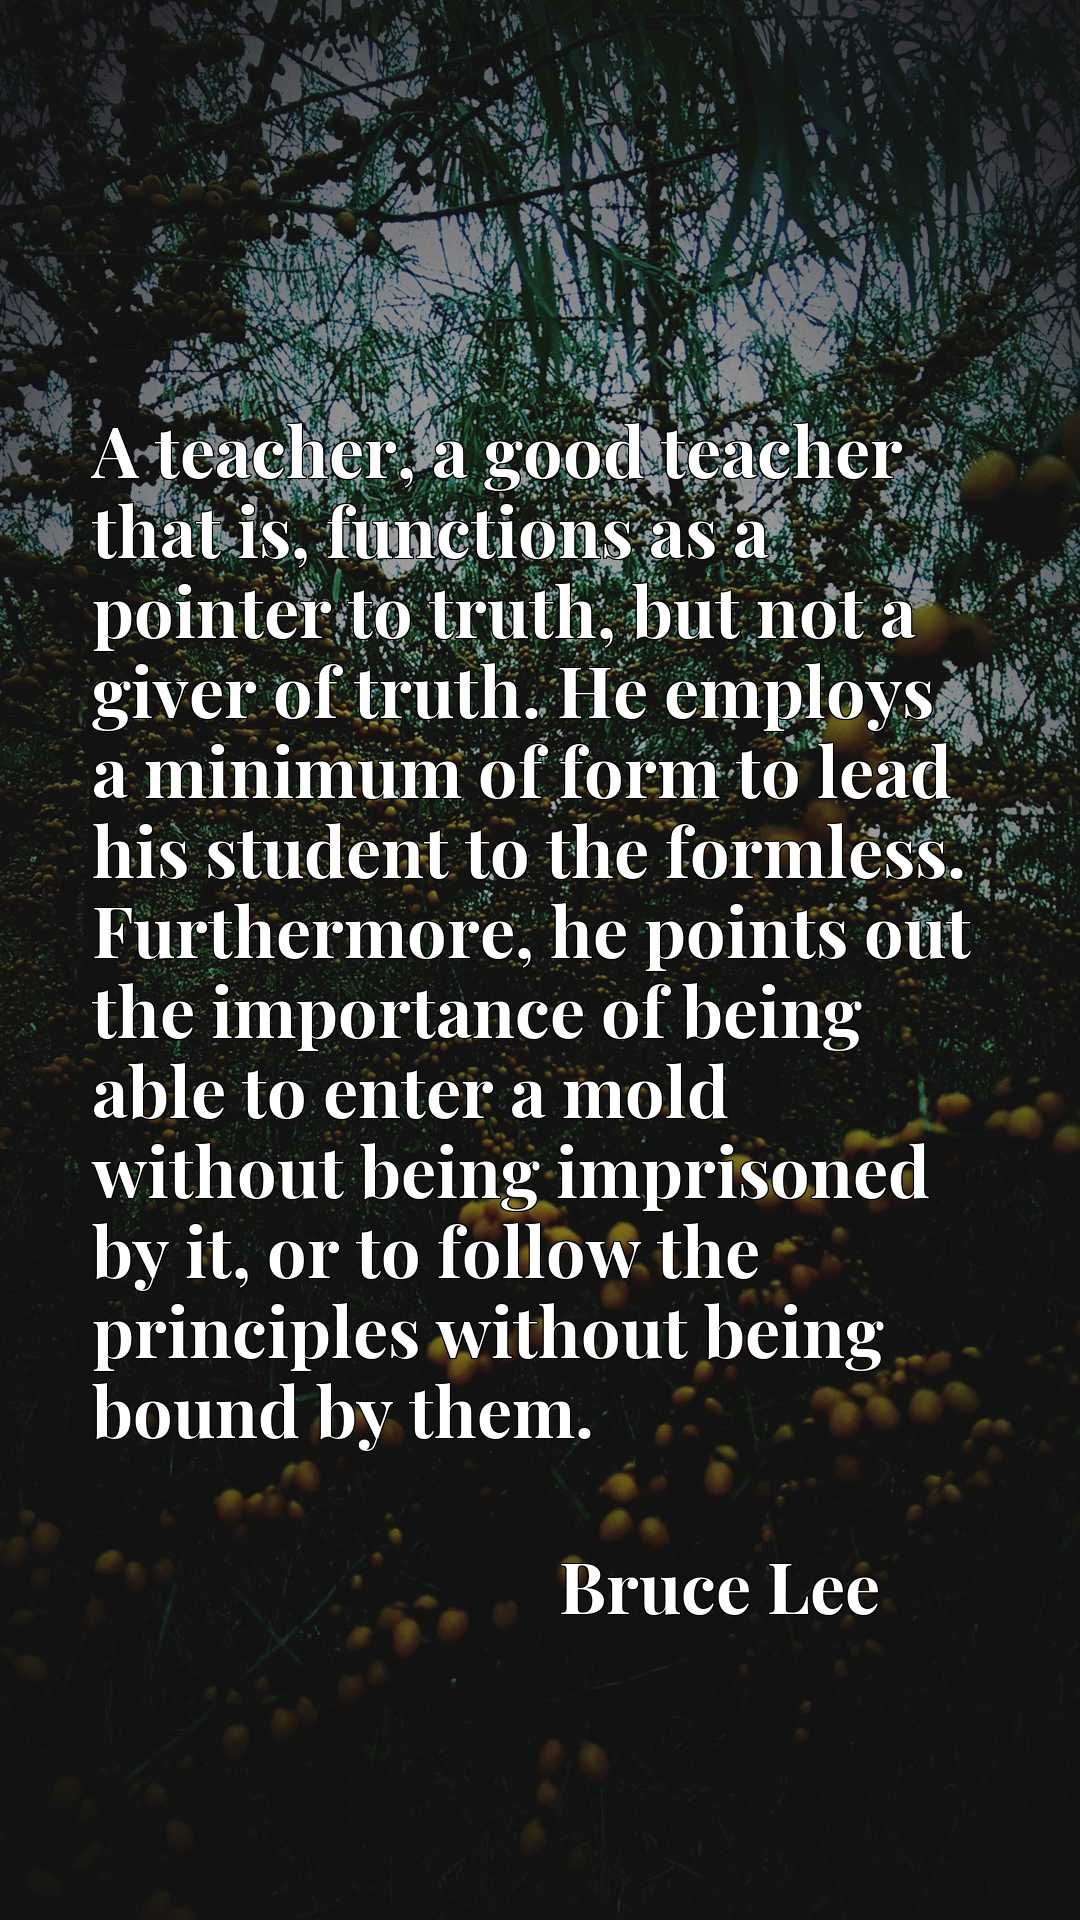 A teacher, a good teacher that is, functions as a pointer to truth, but not a giver of truth. He employs a minimum of form to lead his student to the formless. Furthermore, he points out the importance of being able to enter a mold without being imprisoned by it, or to follow the principles without being bound by them.